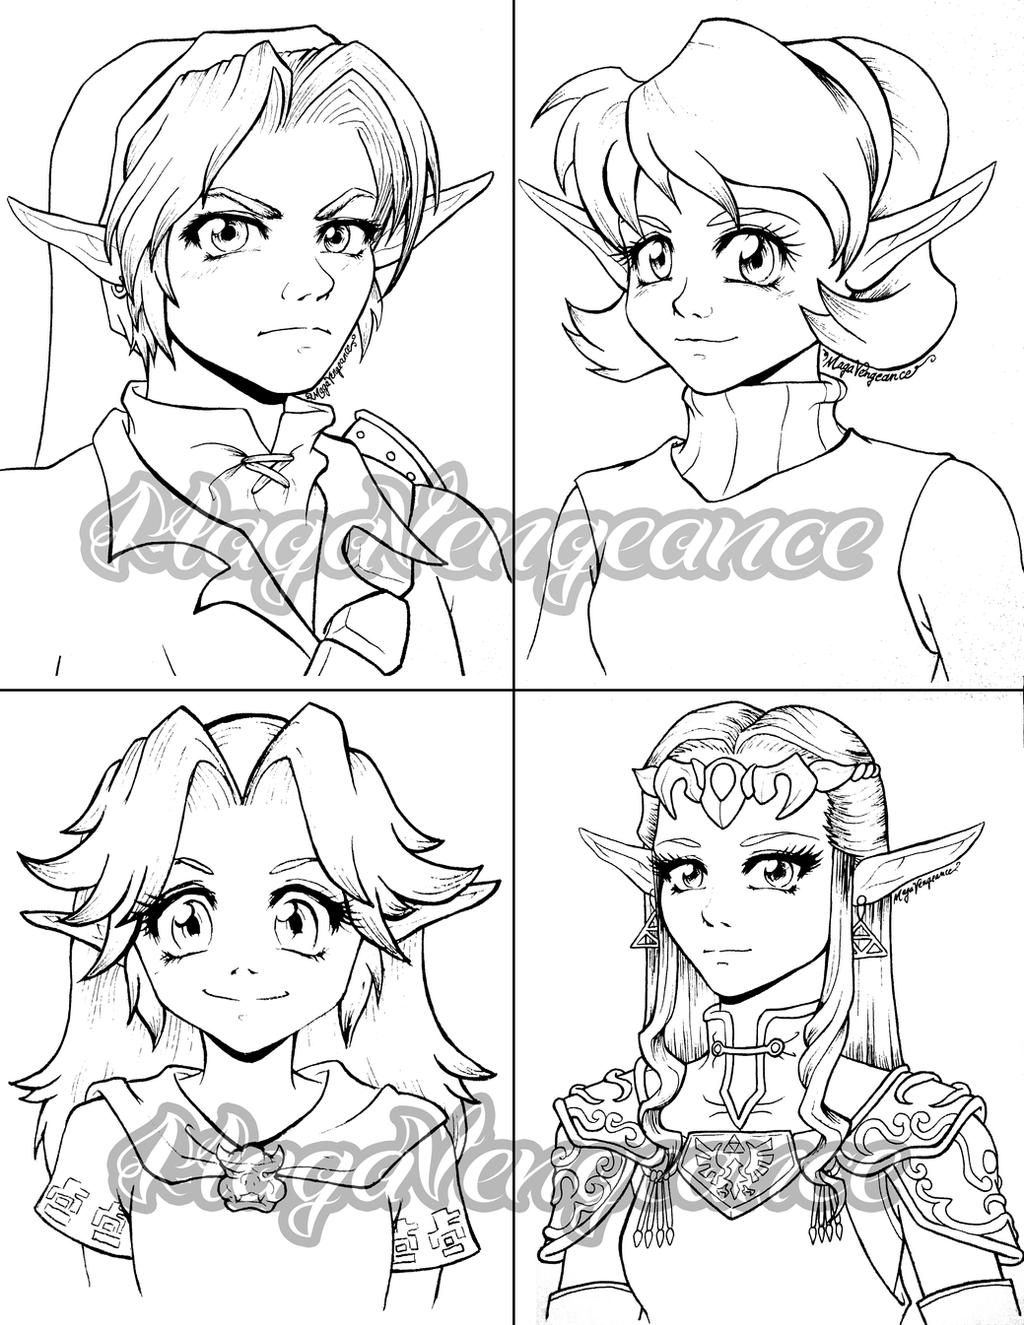 Legend of Zelda characters by maga-a7x